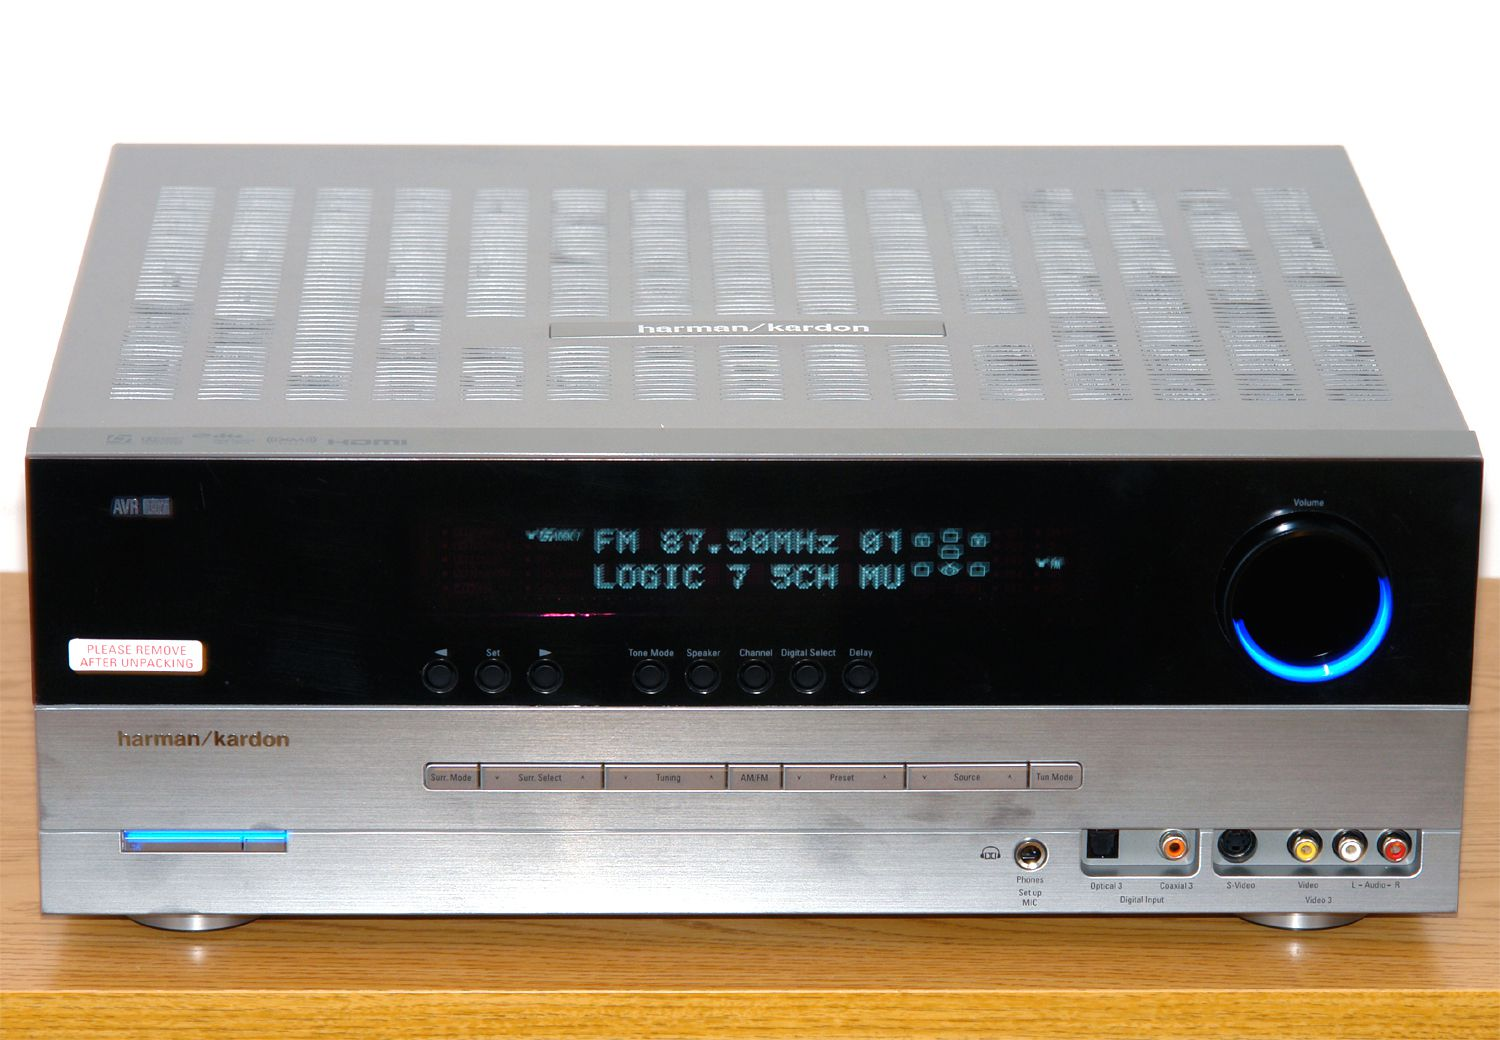 Harman Kardon Avr147 Home Theater Receiver Review